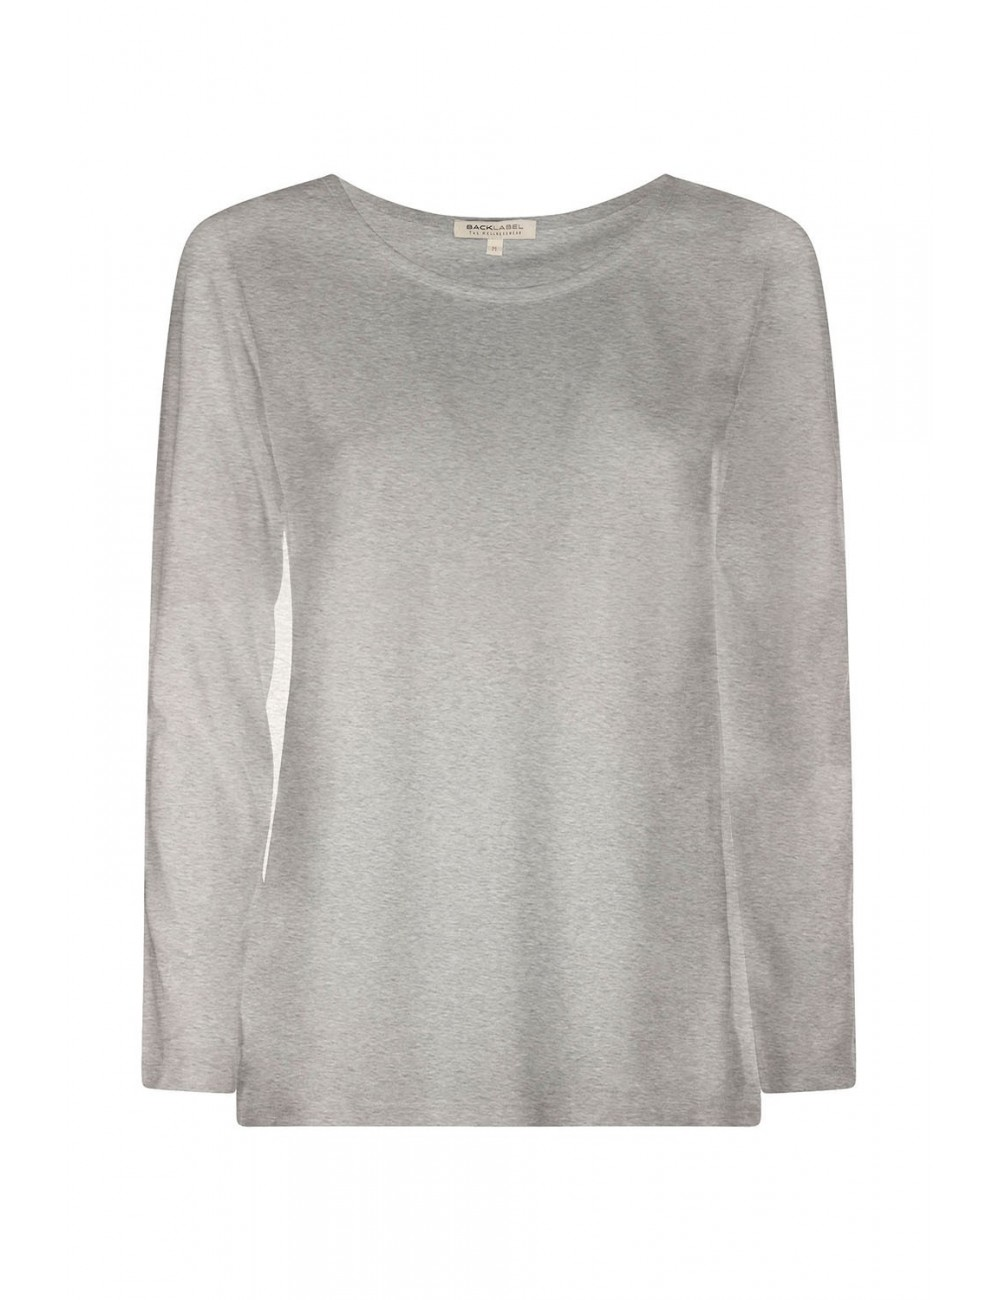 T-shirt Long Sleeves - Organic Cotton